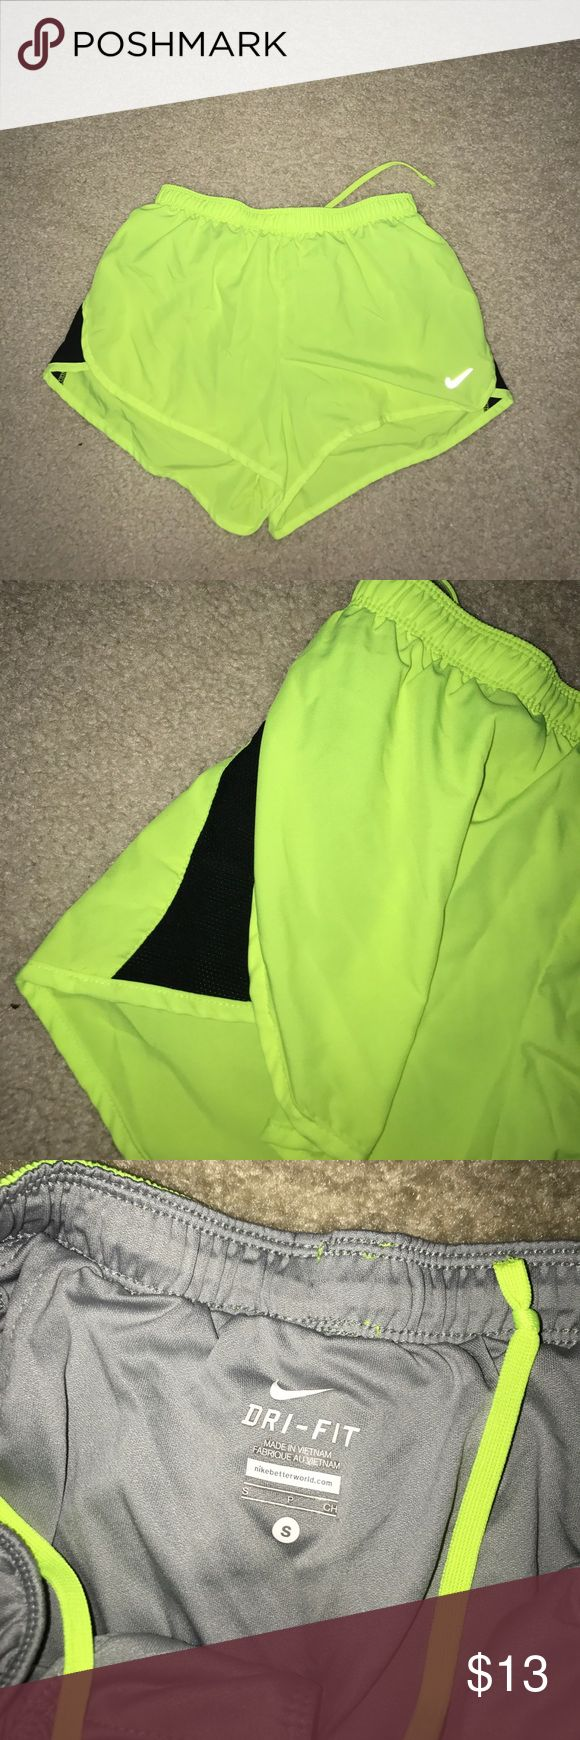 NEON YELLOW NIKE DRI-FIT RUNNING SHORTS Neon yellow Nike dri-fit running shorts. They have inner lining. Black stripe on the side. Size small. Nike Shorts